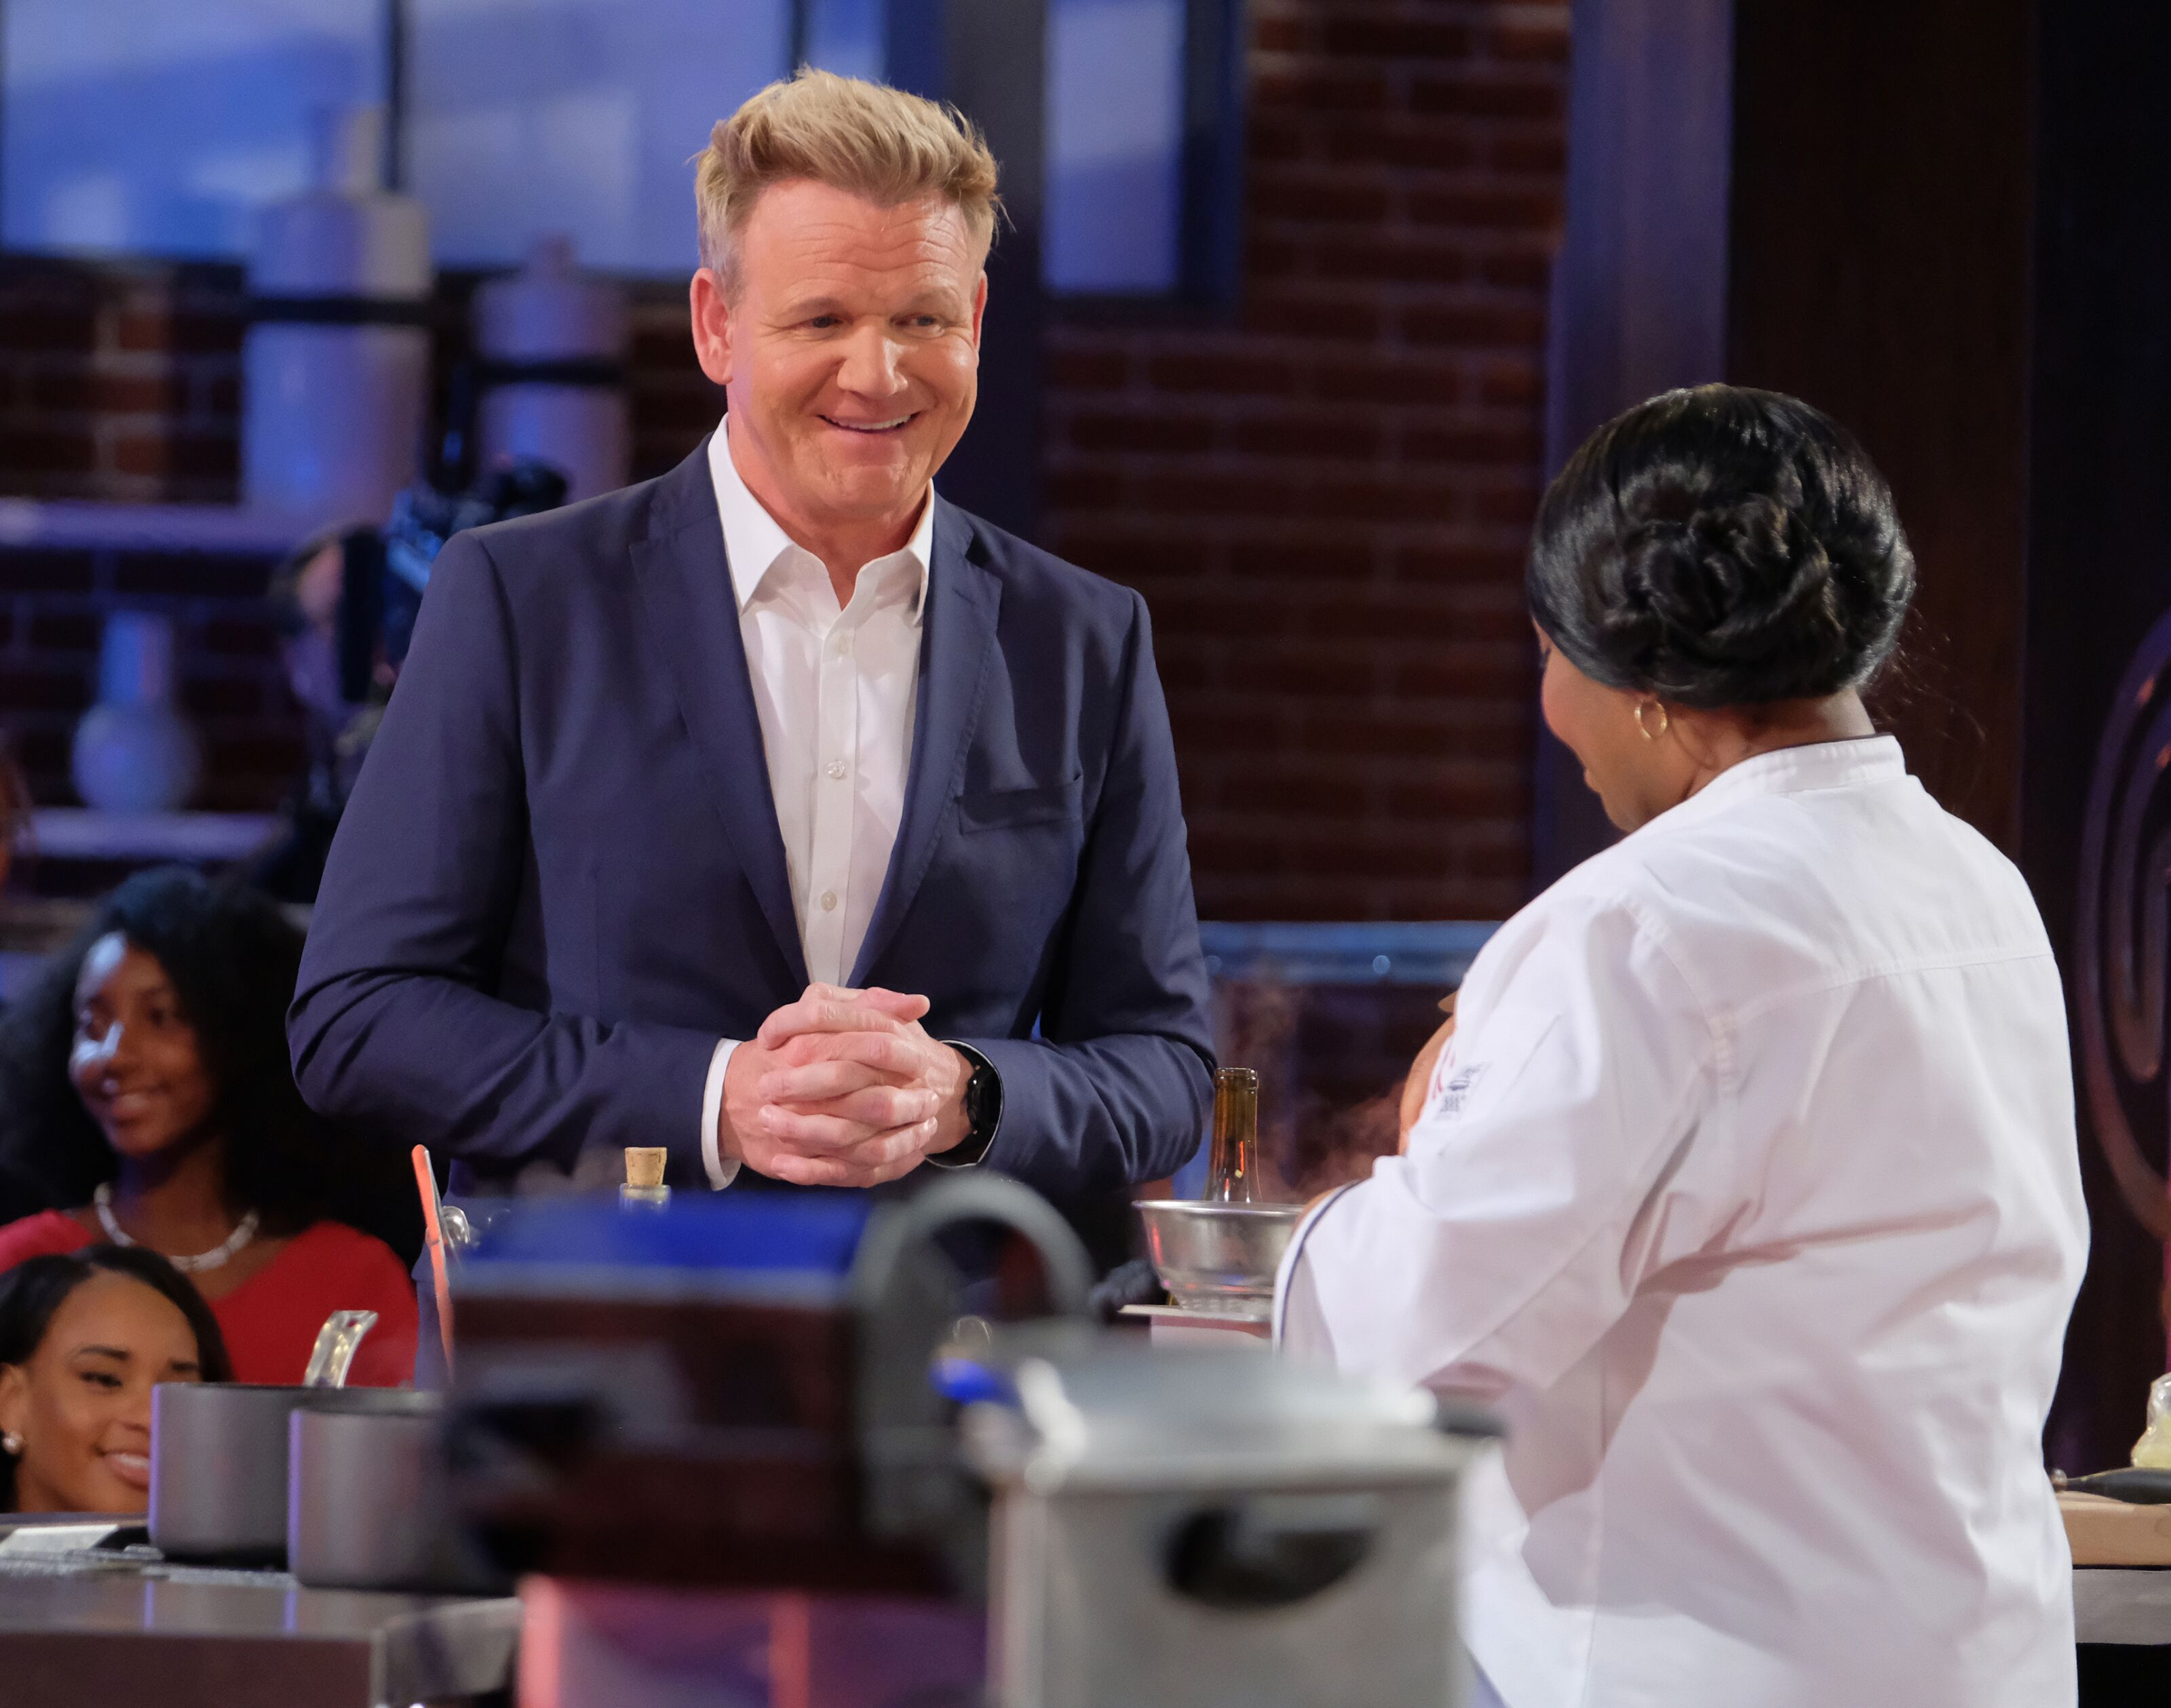 MasterChef Season 10 winner: Combining a story with substance